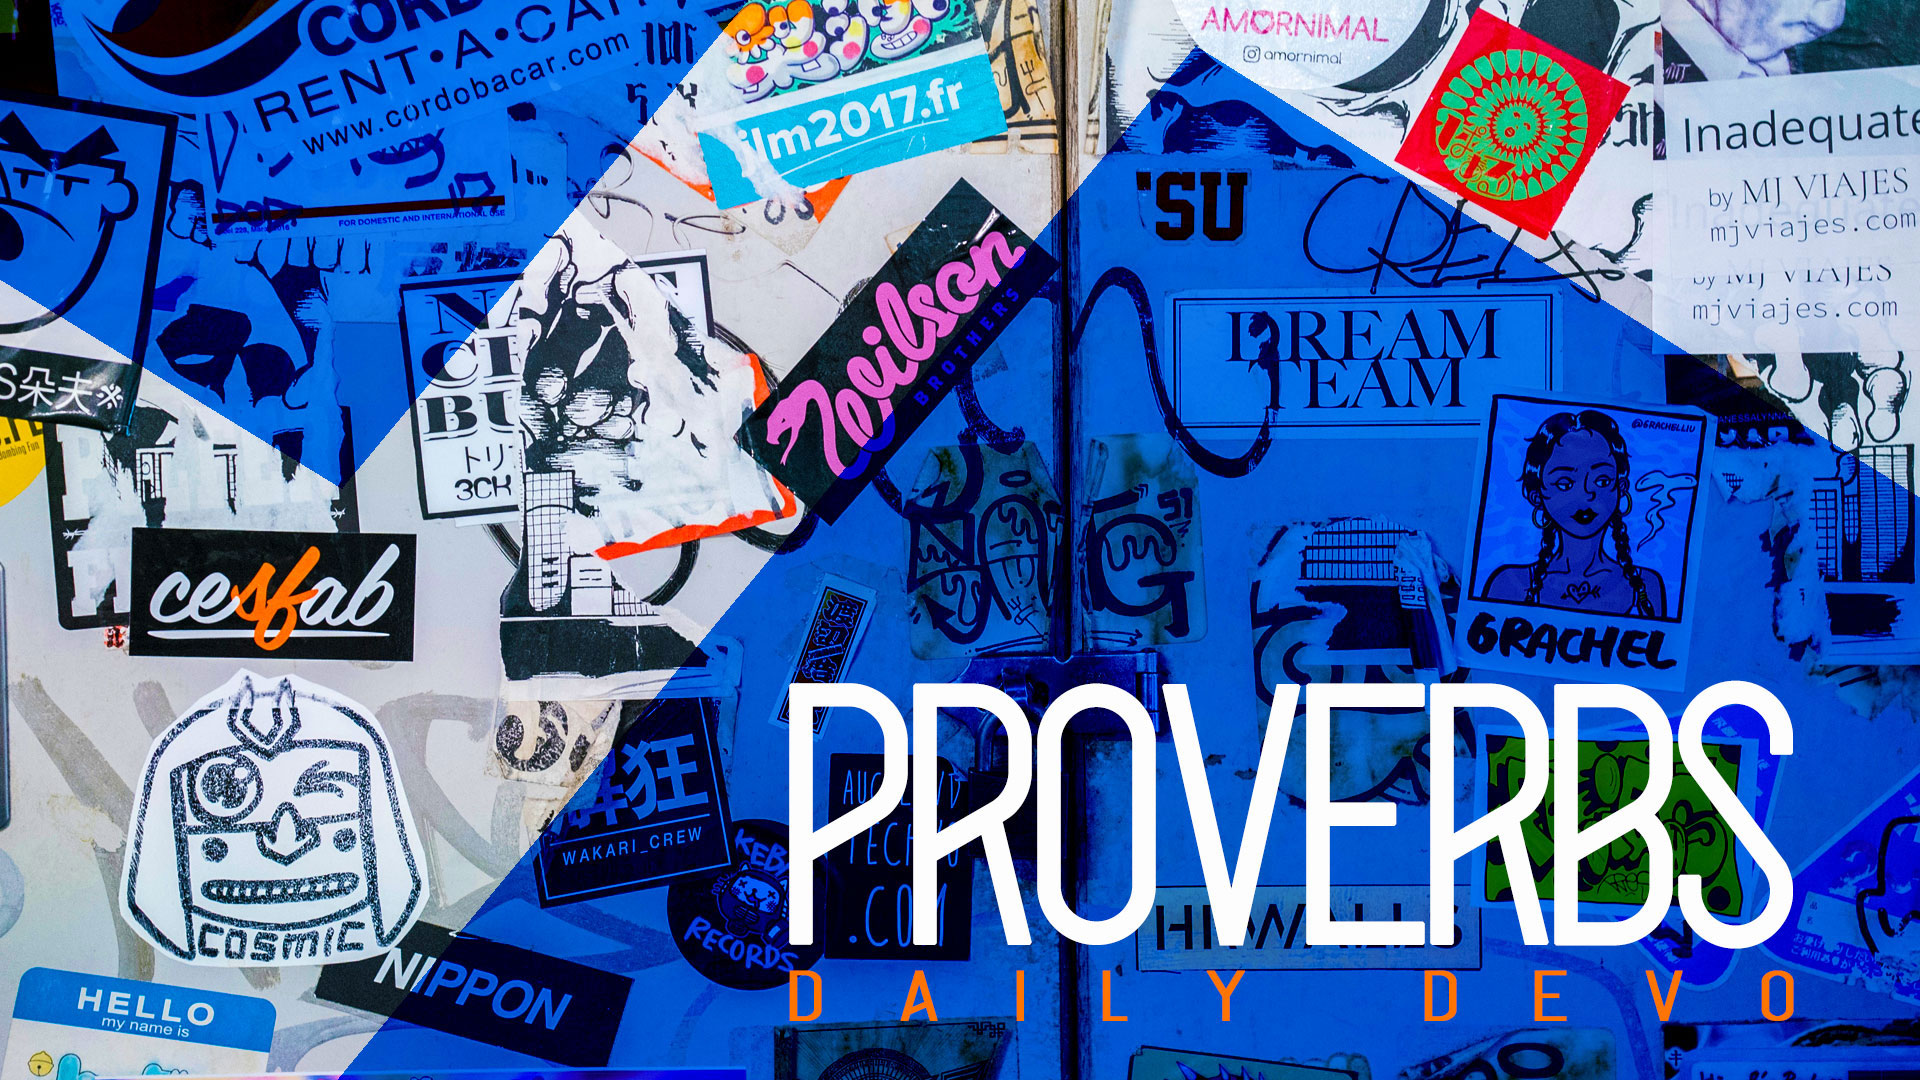 Series: Proverbs